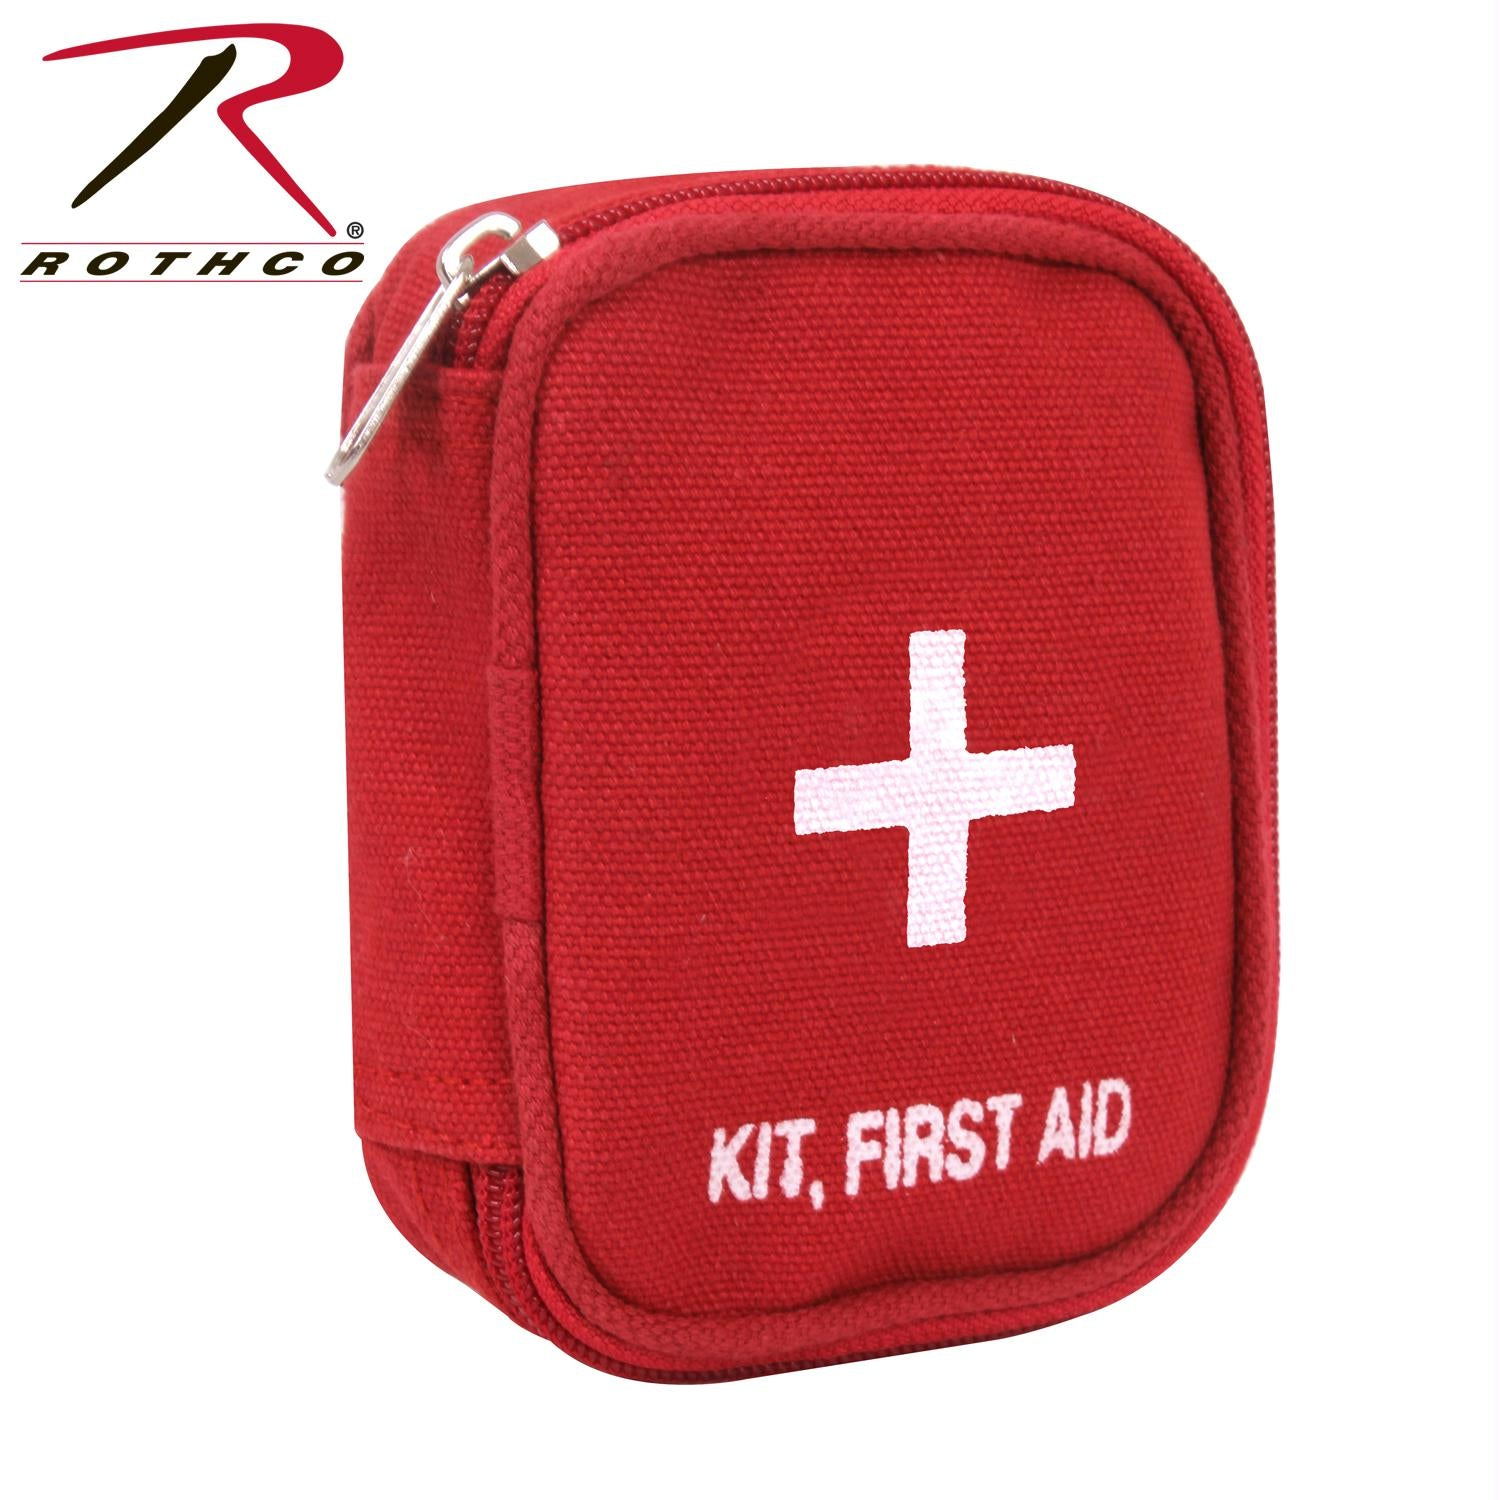 Rothco Military Zipper First Aid Kit - Red